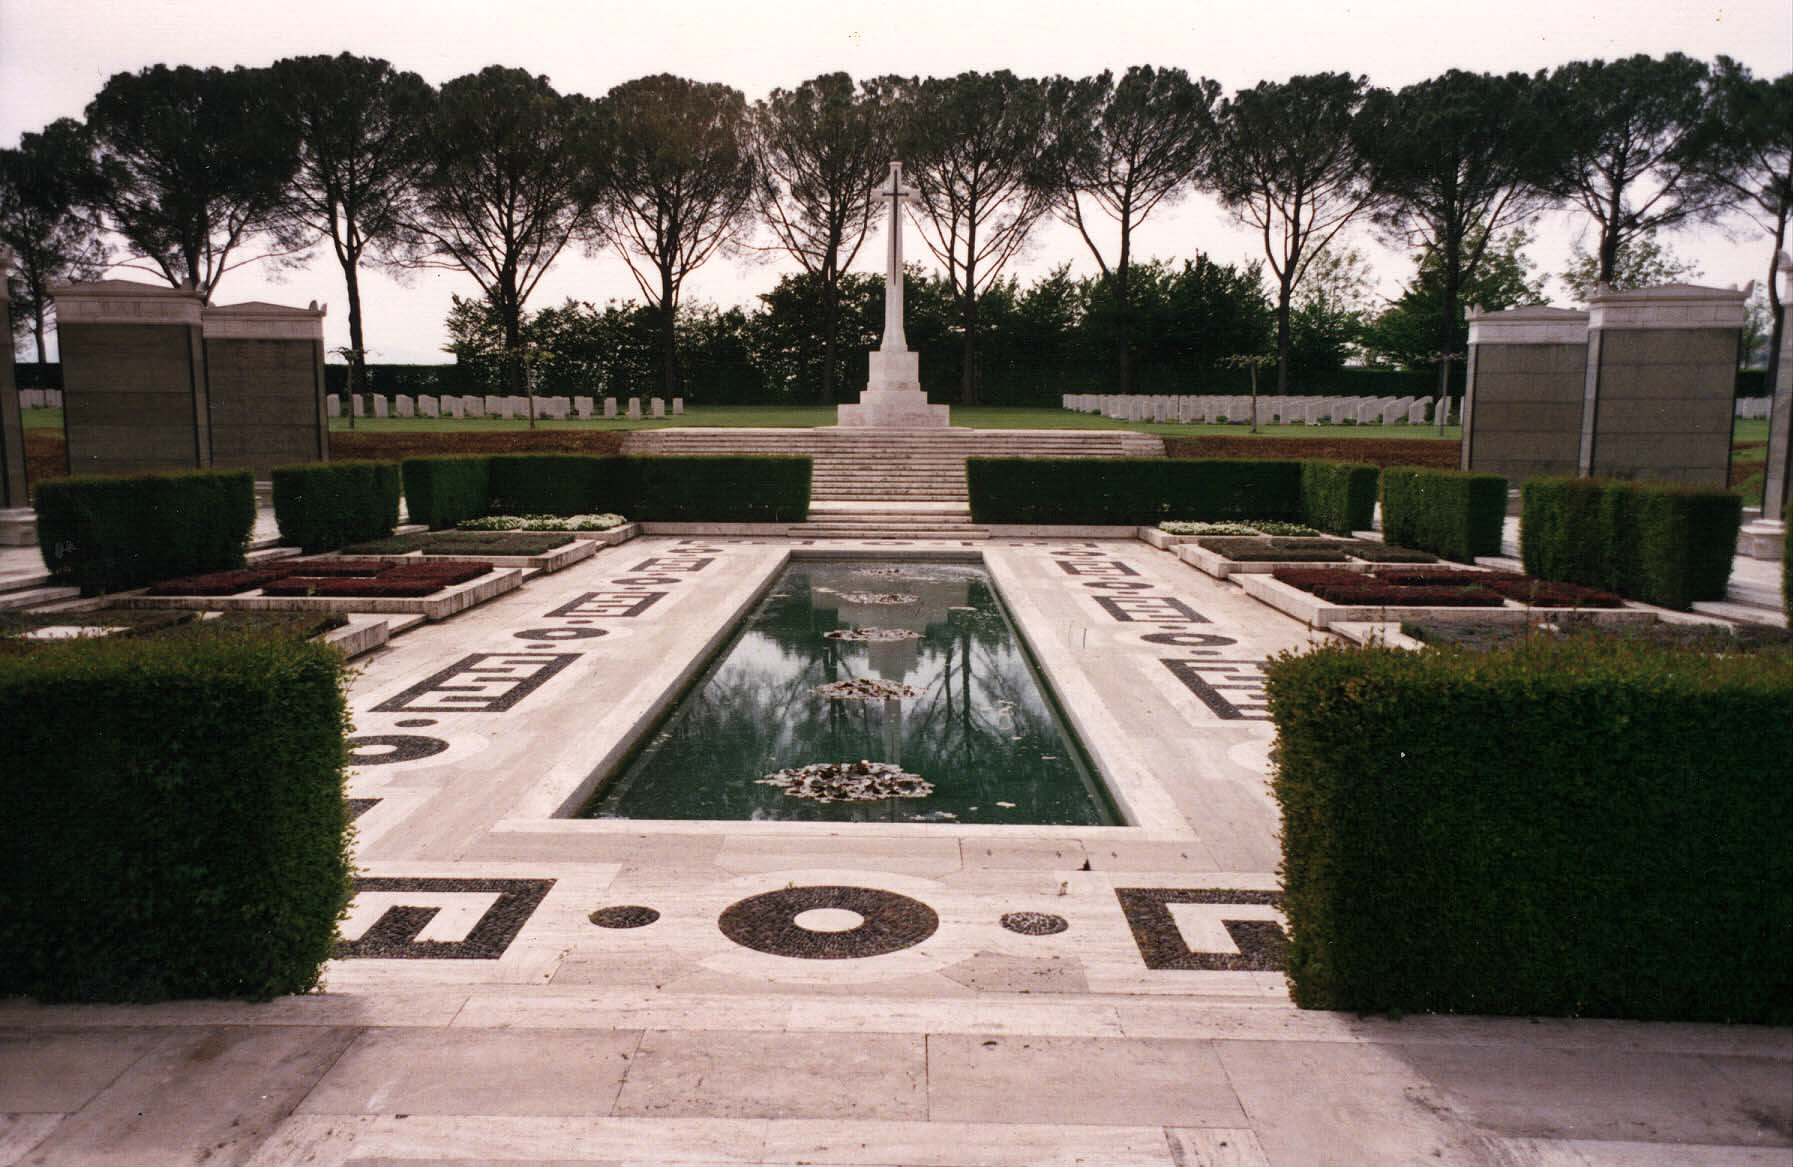 Cassino Cemetery and Memorial, Italy